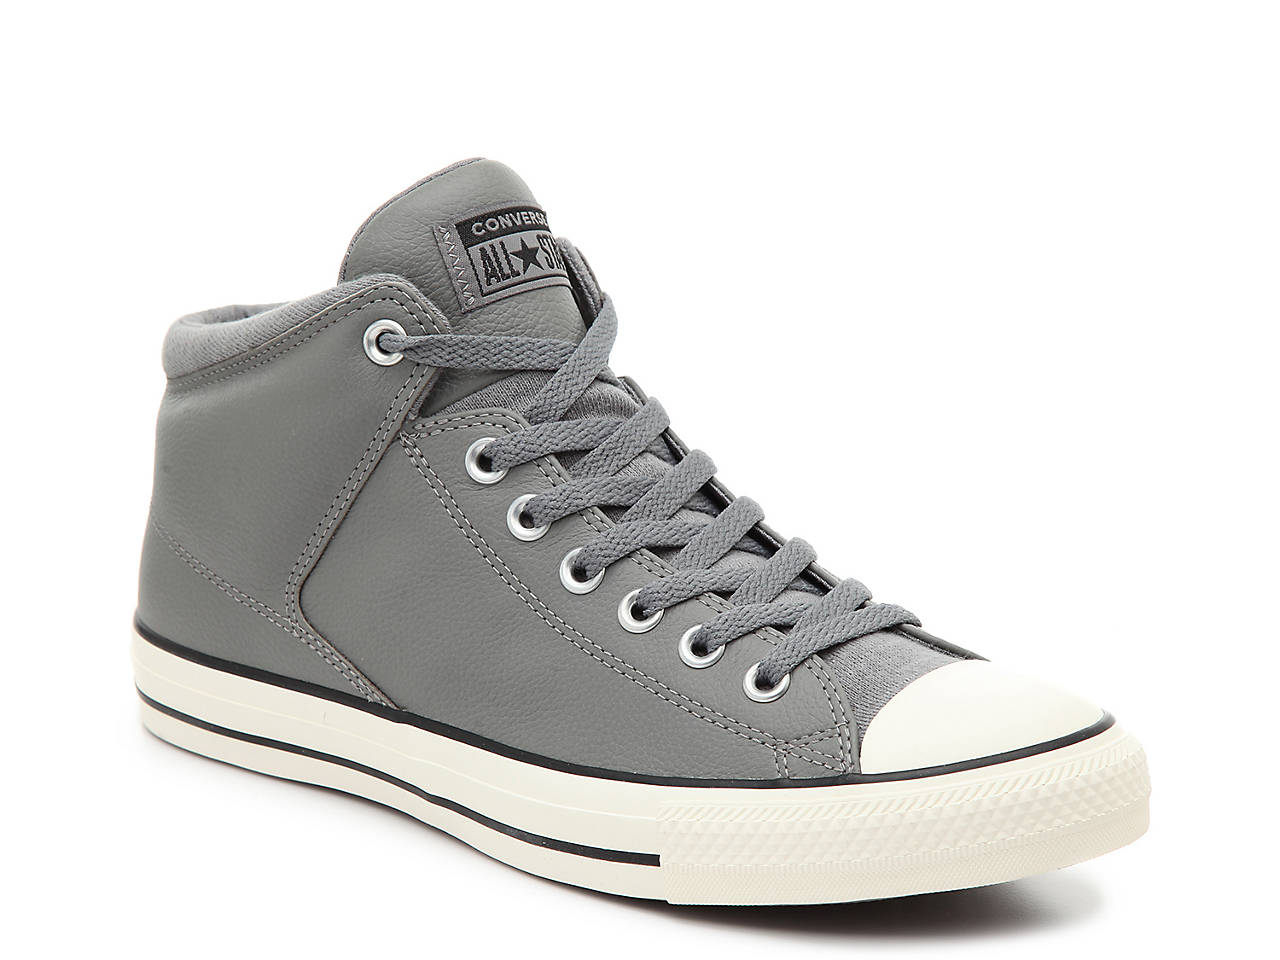 ba5de946809 Converse Chuck Taylor All Star Hi Street Leather High-Top Sneaker ...